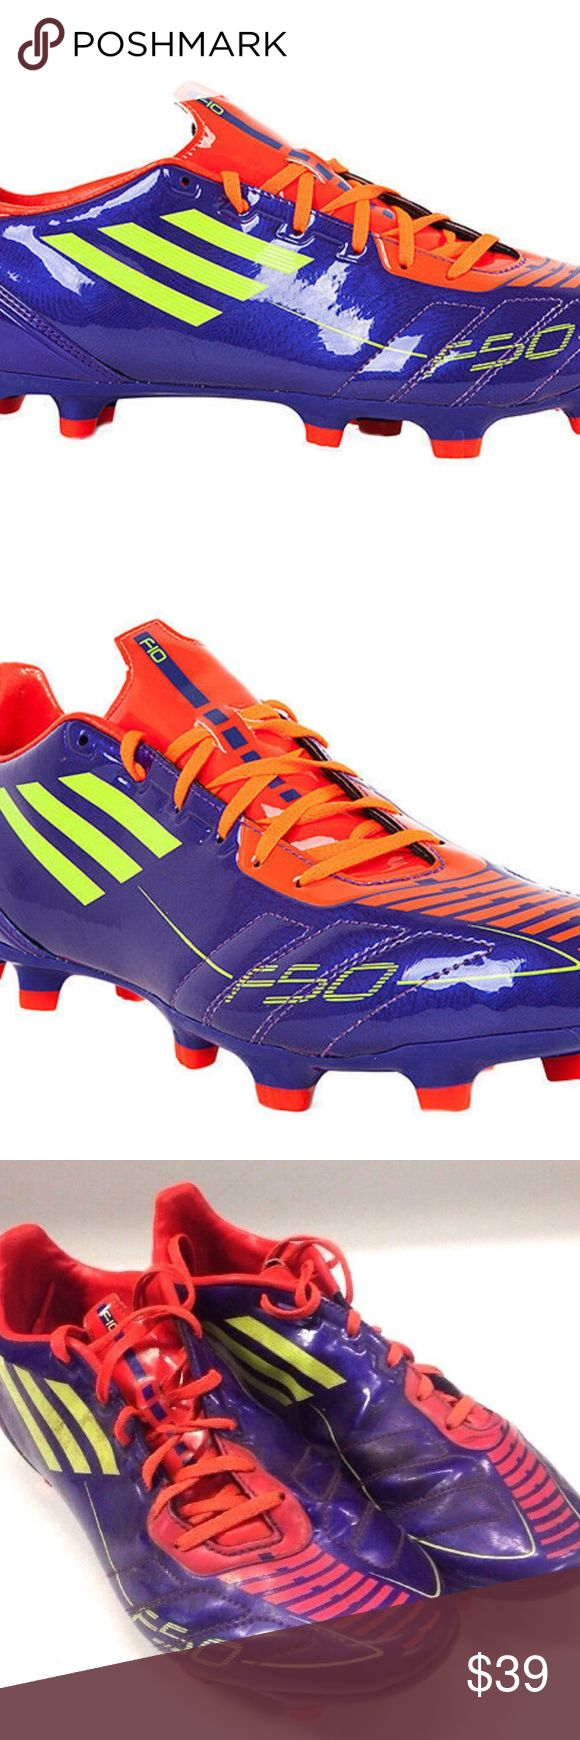 Adidas F10 TRX FG 2011 Soccer cleats G40256 Shoes Purple / Electricity / Infrared  # G40256  Mens size 9 US  Good used condition. There is a little dirt on the shoes. Nothing major. See pictures for details adidas Shoes Athletic Shoes